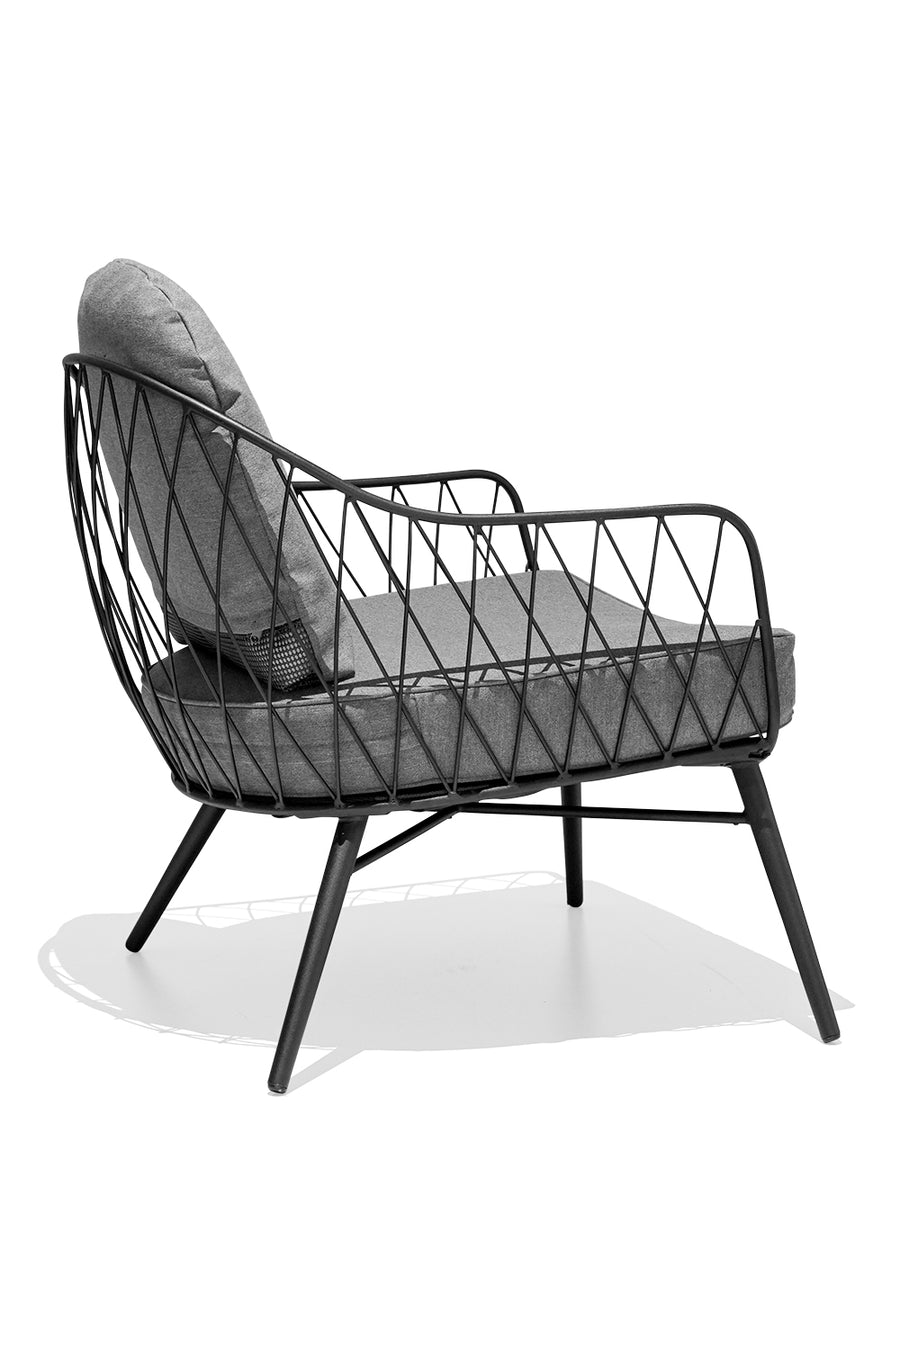 MOSMAN arm chair